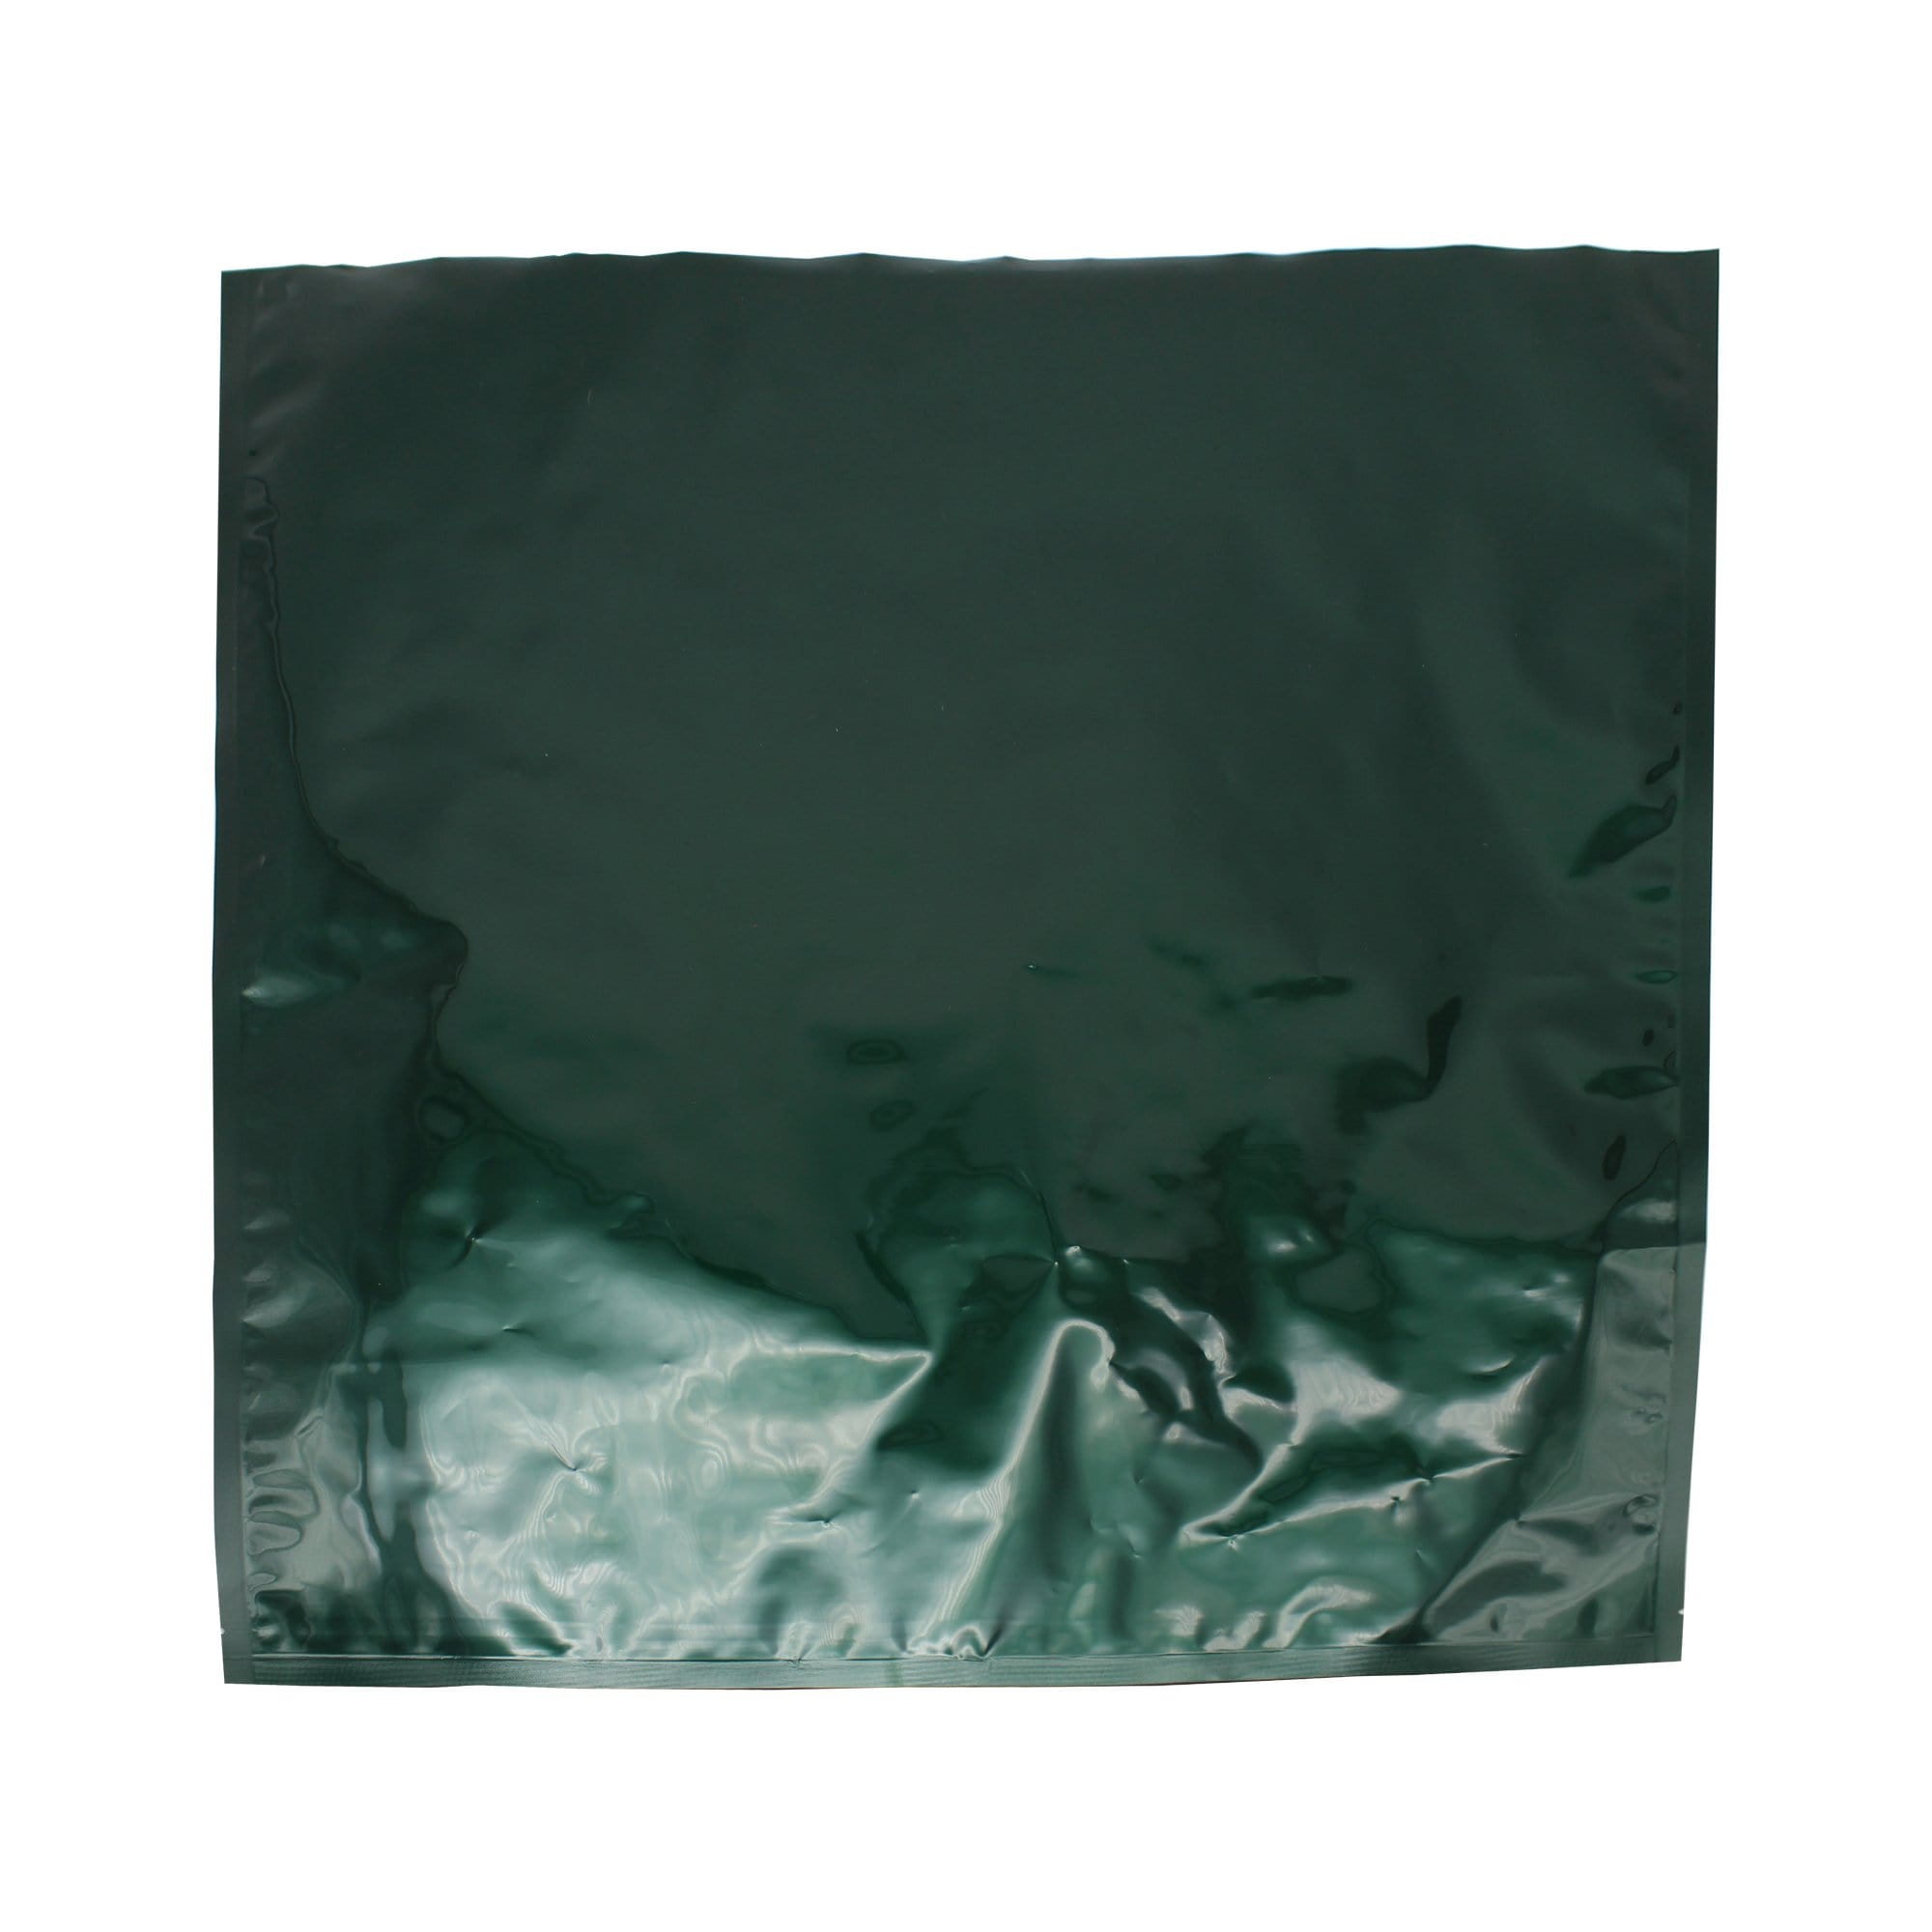 Green Mylar Foil Bag - 45.09cm x 47.63cm (17.75 inches x 18.75 inches)